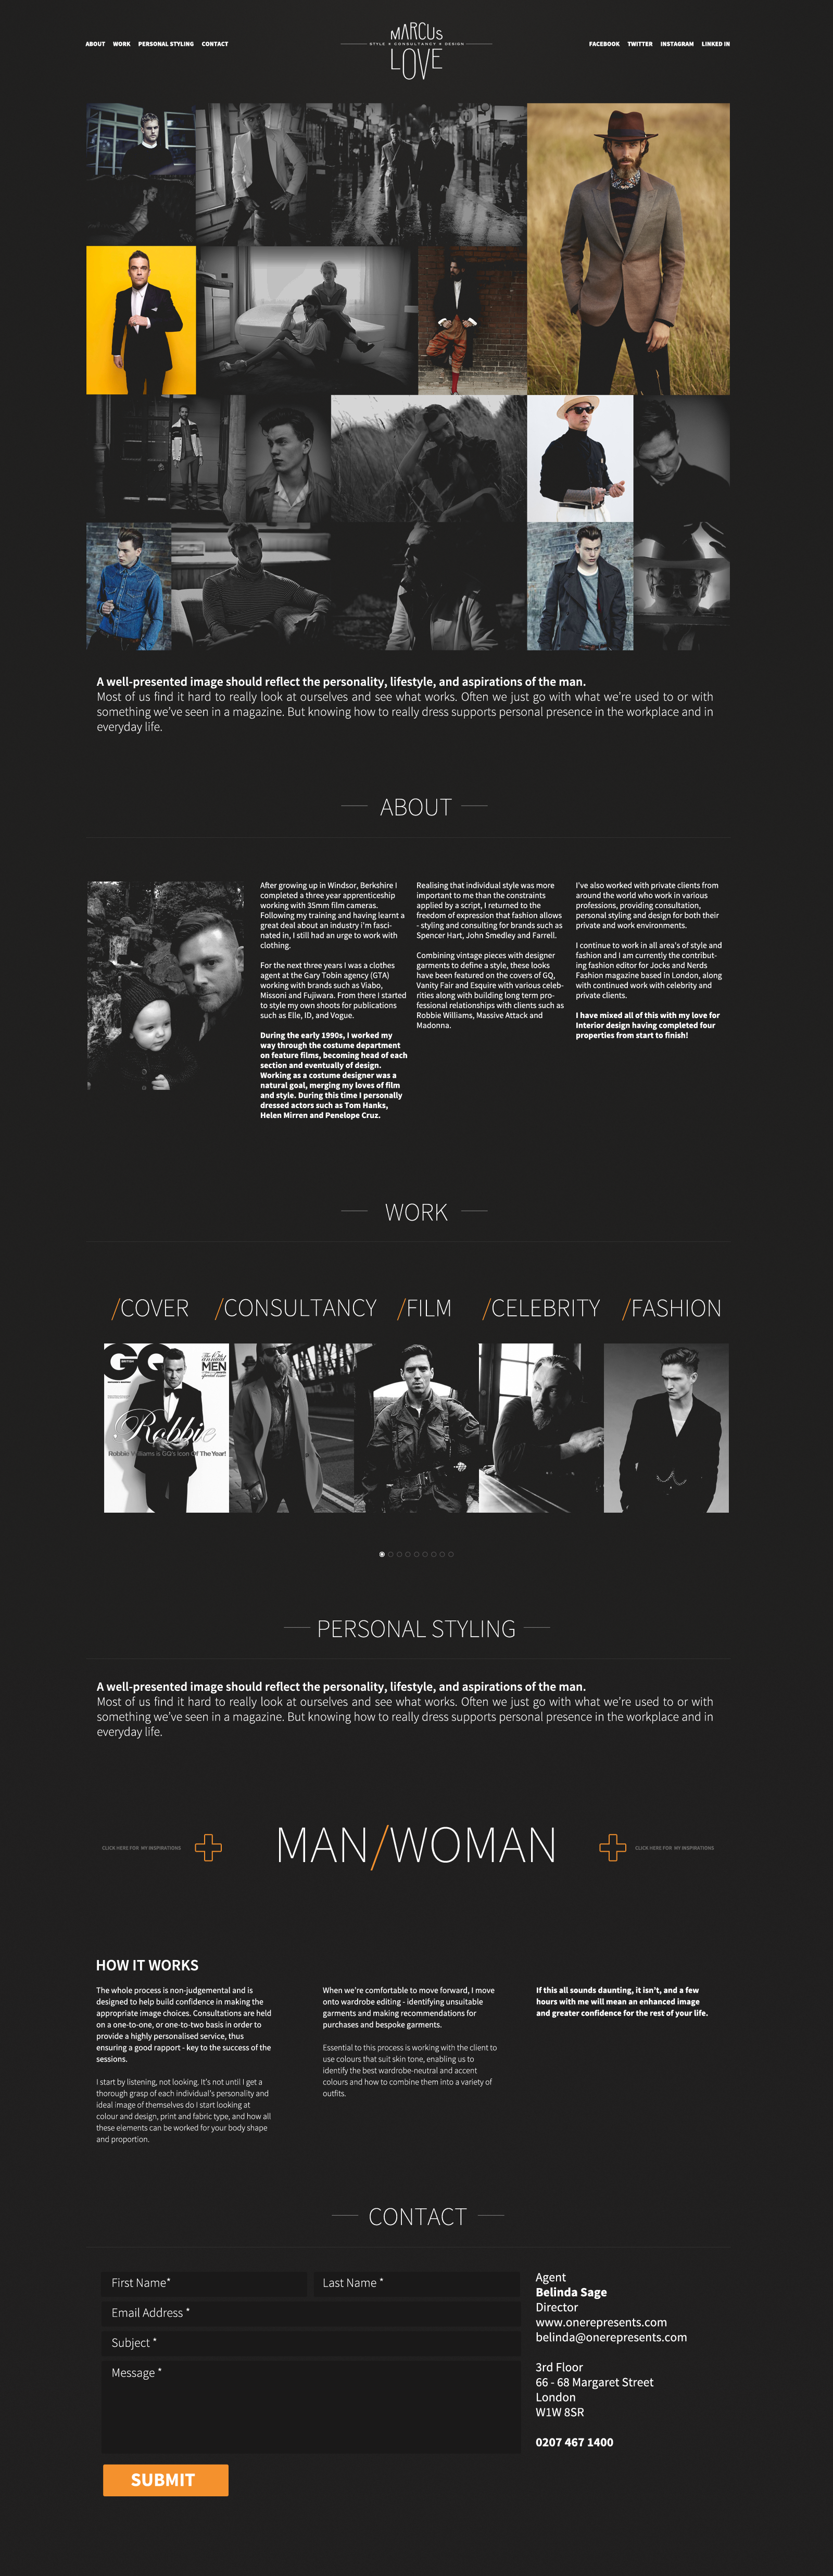 Marcus love onepager